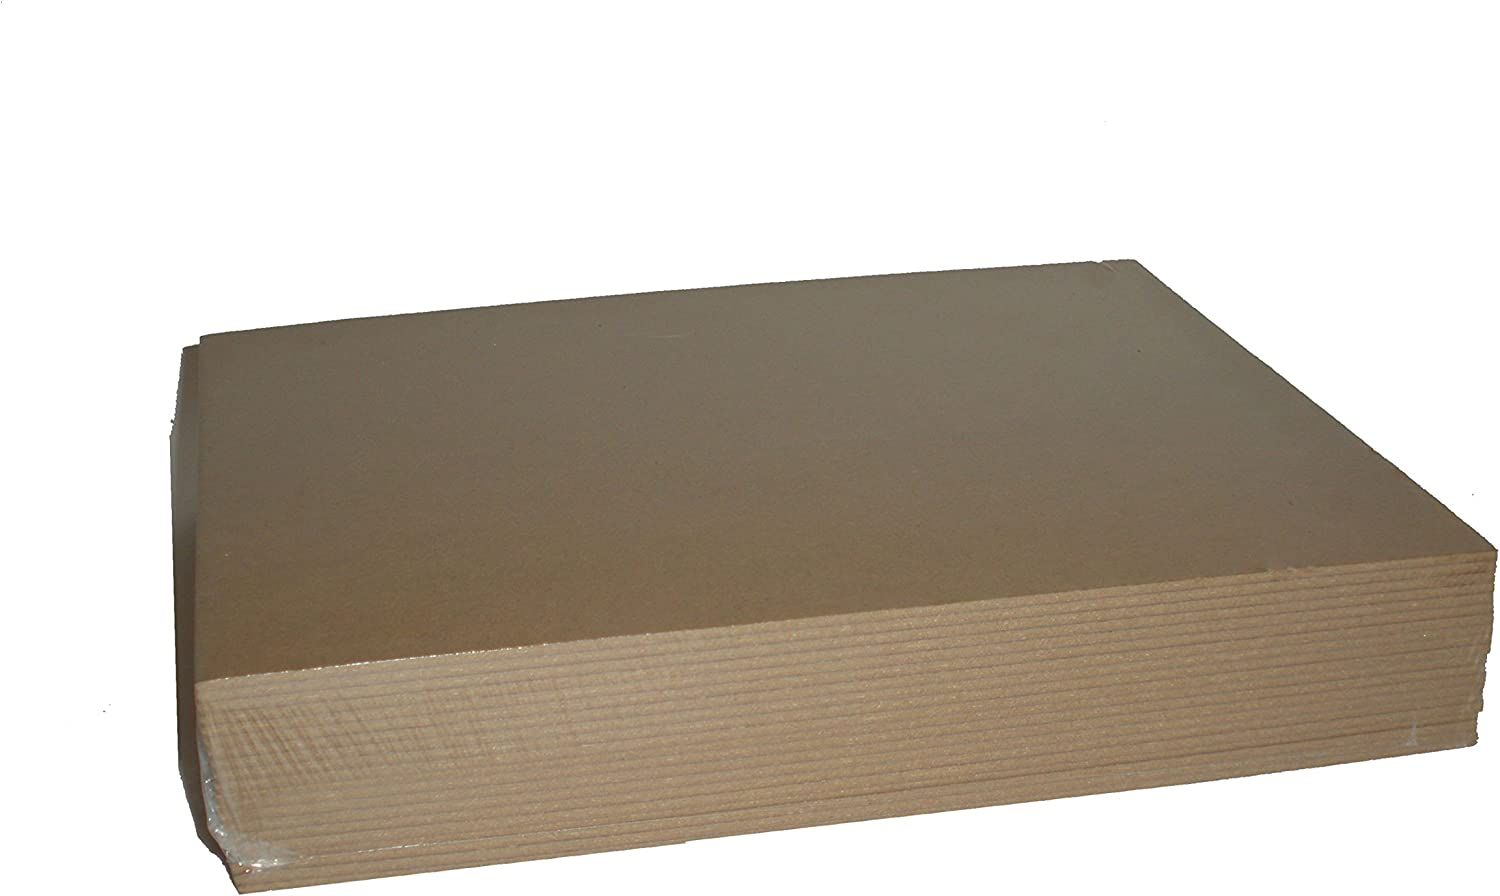 100 Sheets Brown//Gray Chipboard 60 Point Extra Thick 4 X 6 Photo Card Frame Size .060 Caliper Extra X Heavy Cardboard as Thick as 15 Sheets 20# Paper 4X6 Inches